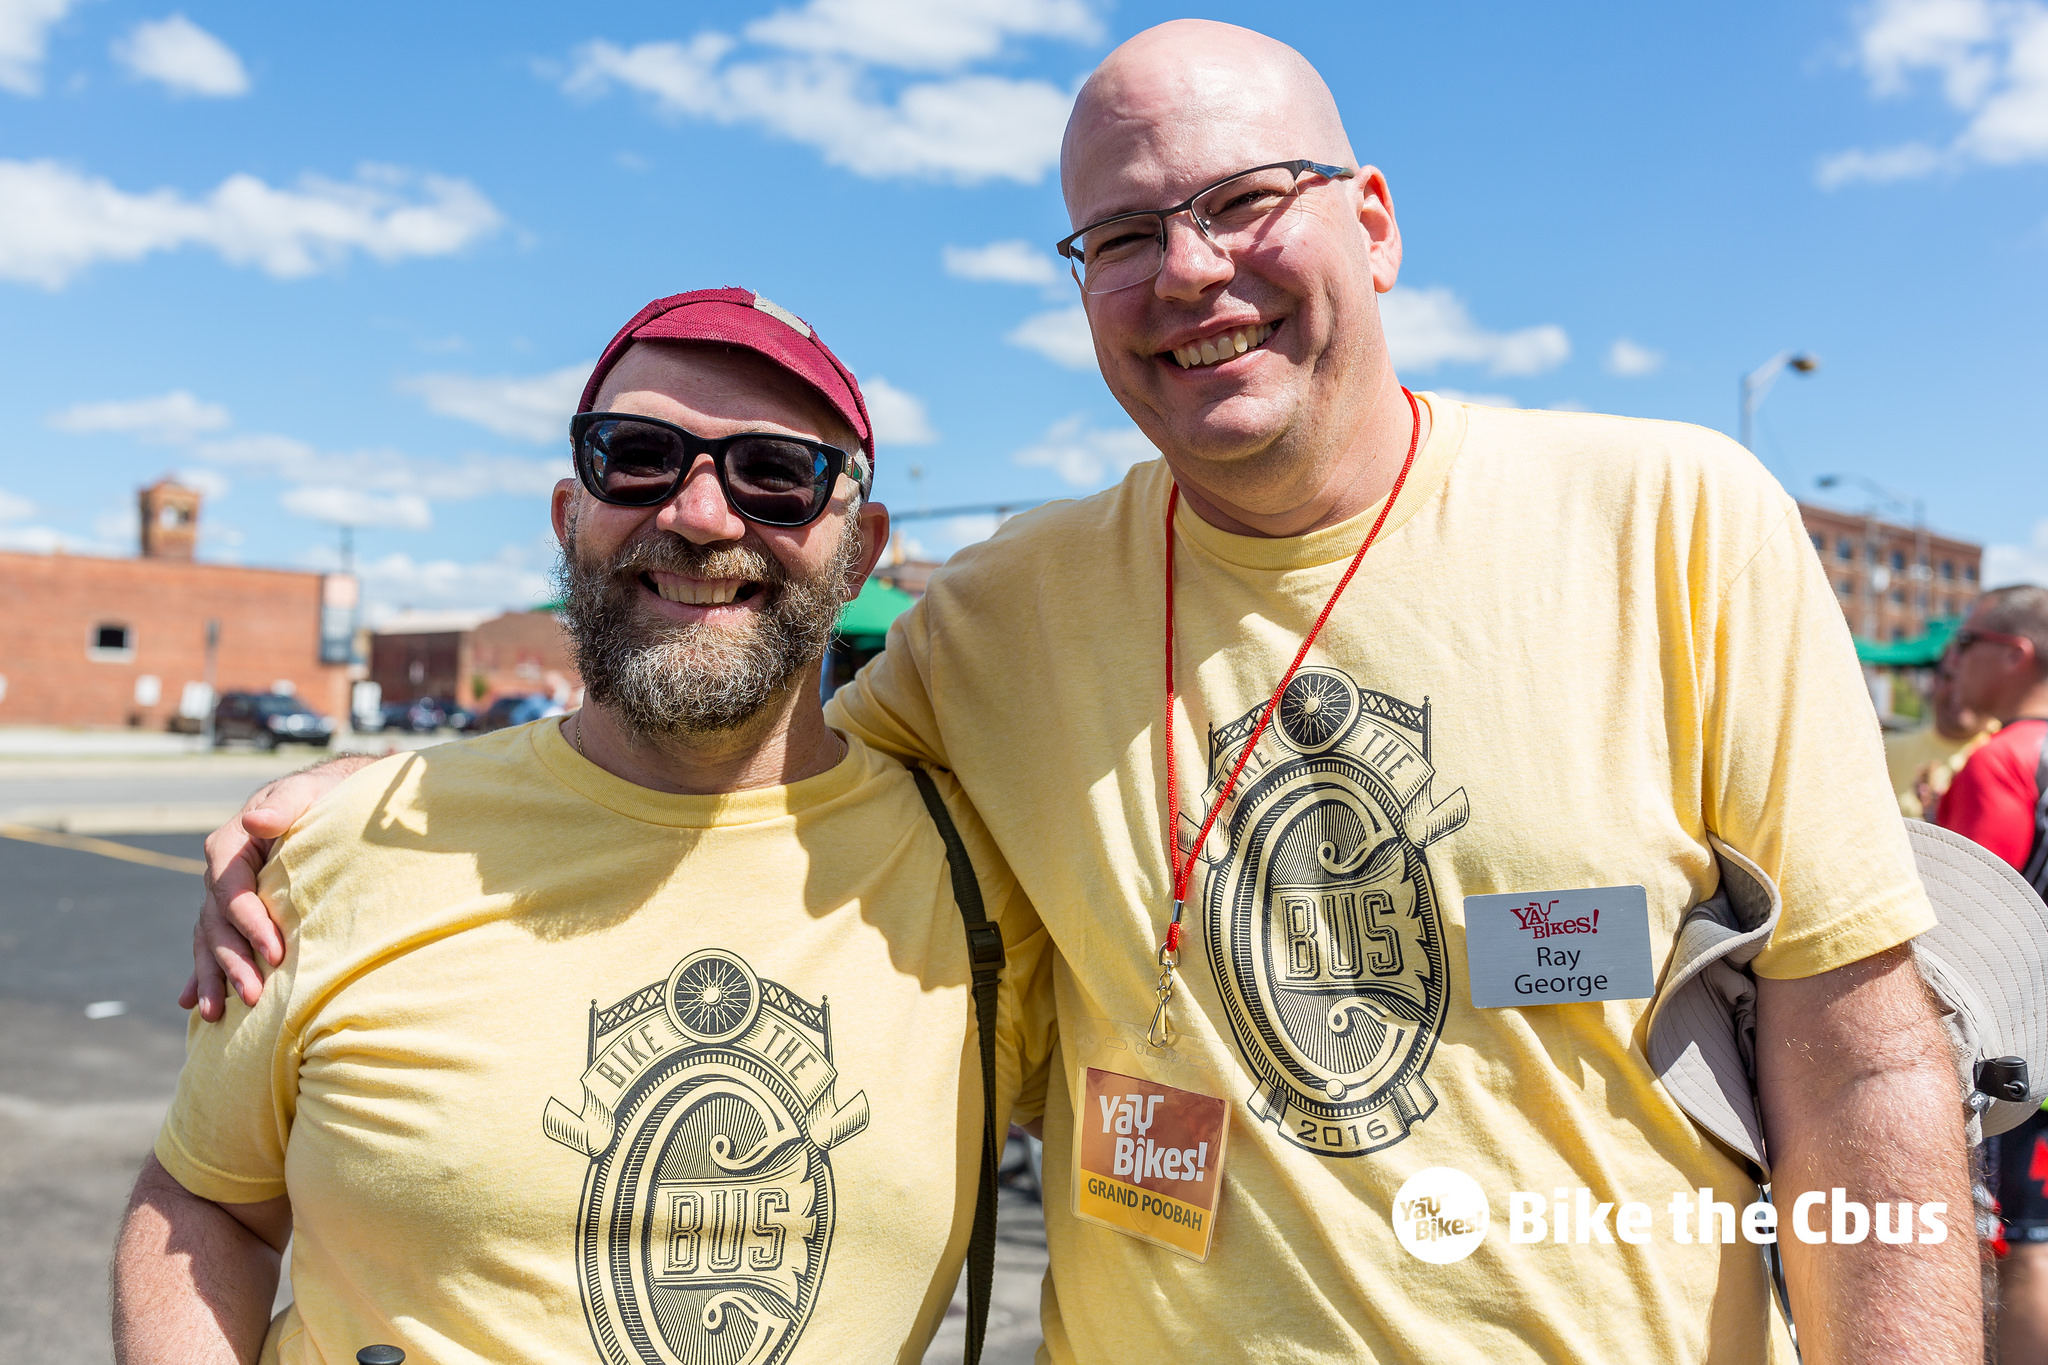 Nik Olah, volunteer, left, joins Ray in the fun at the 2016 Bike the Cbus hosted at  Elevator Brewing . In addition to being the founder, Ray's official title was Grand Poobah.